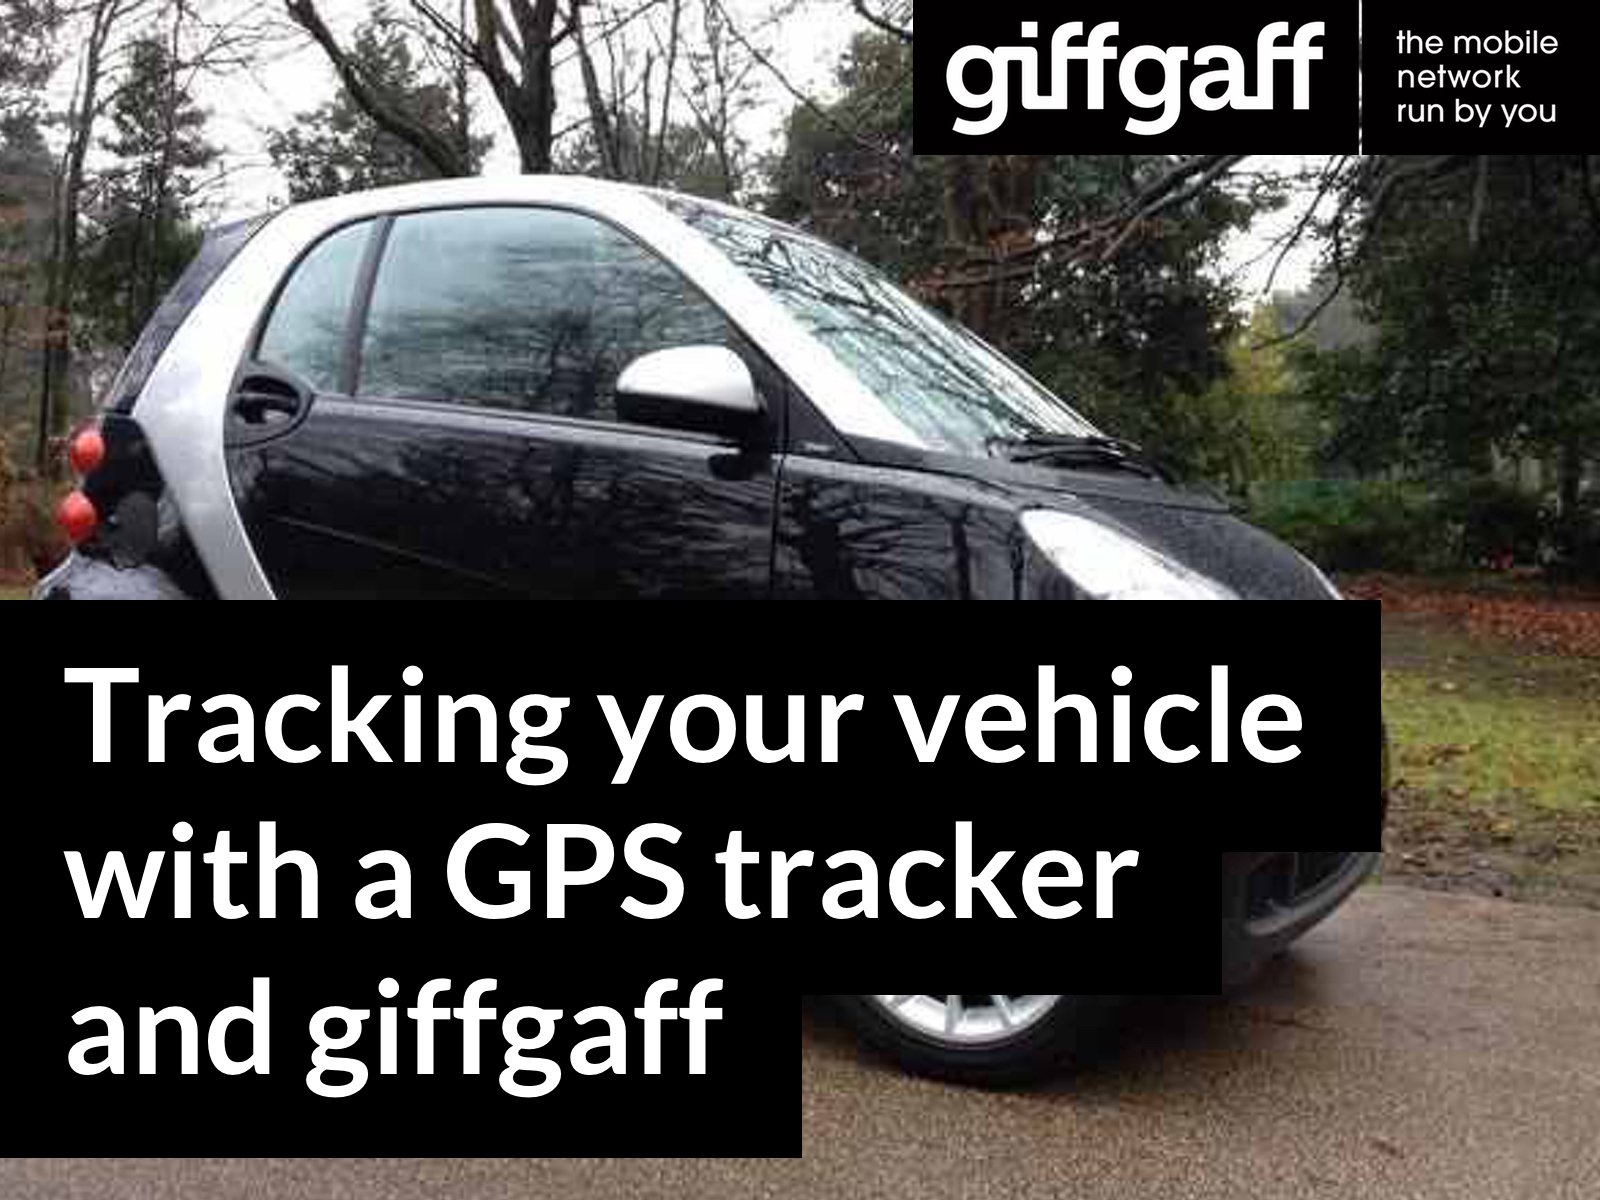 Tracking your vehicle with a GPS tracker and giffgaff